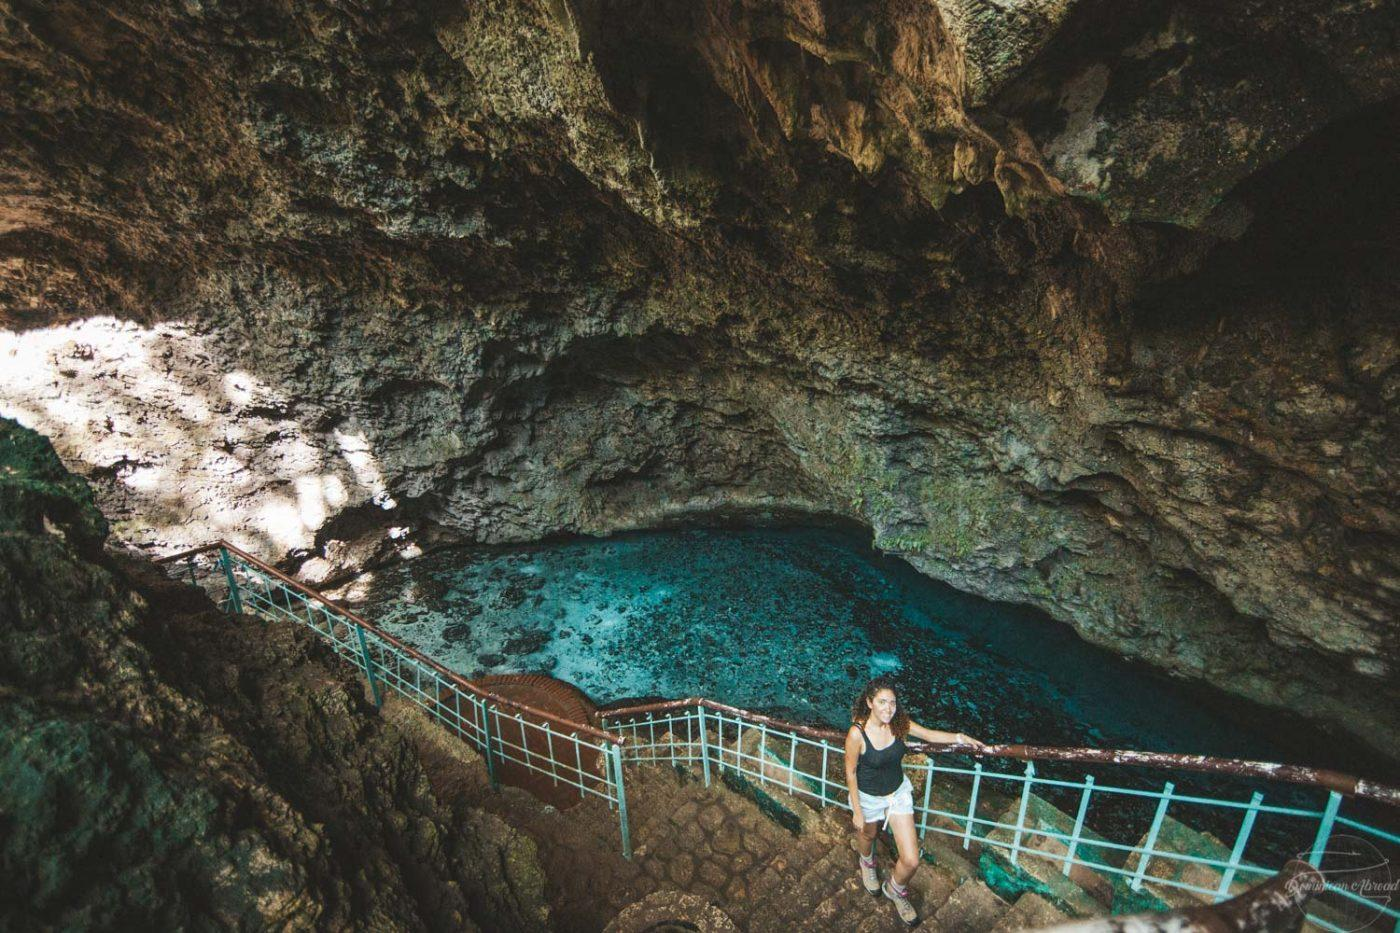 """Also known locally in the Dominican Republic as """"the eyes"""", this is the Three Eyes National Park inature reserve, with its open-air limestone cave system with a series of crystal clear lakes."""